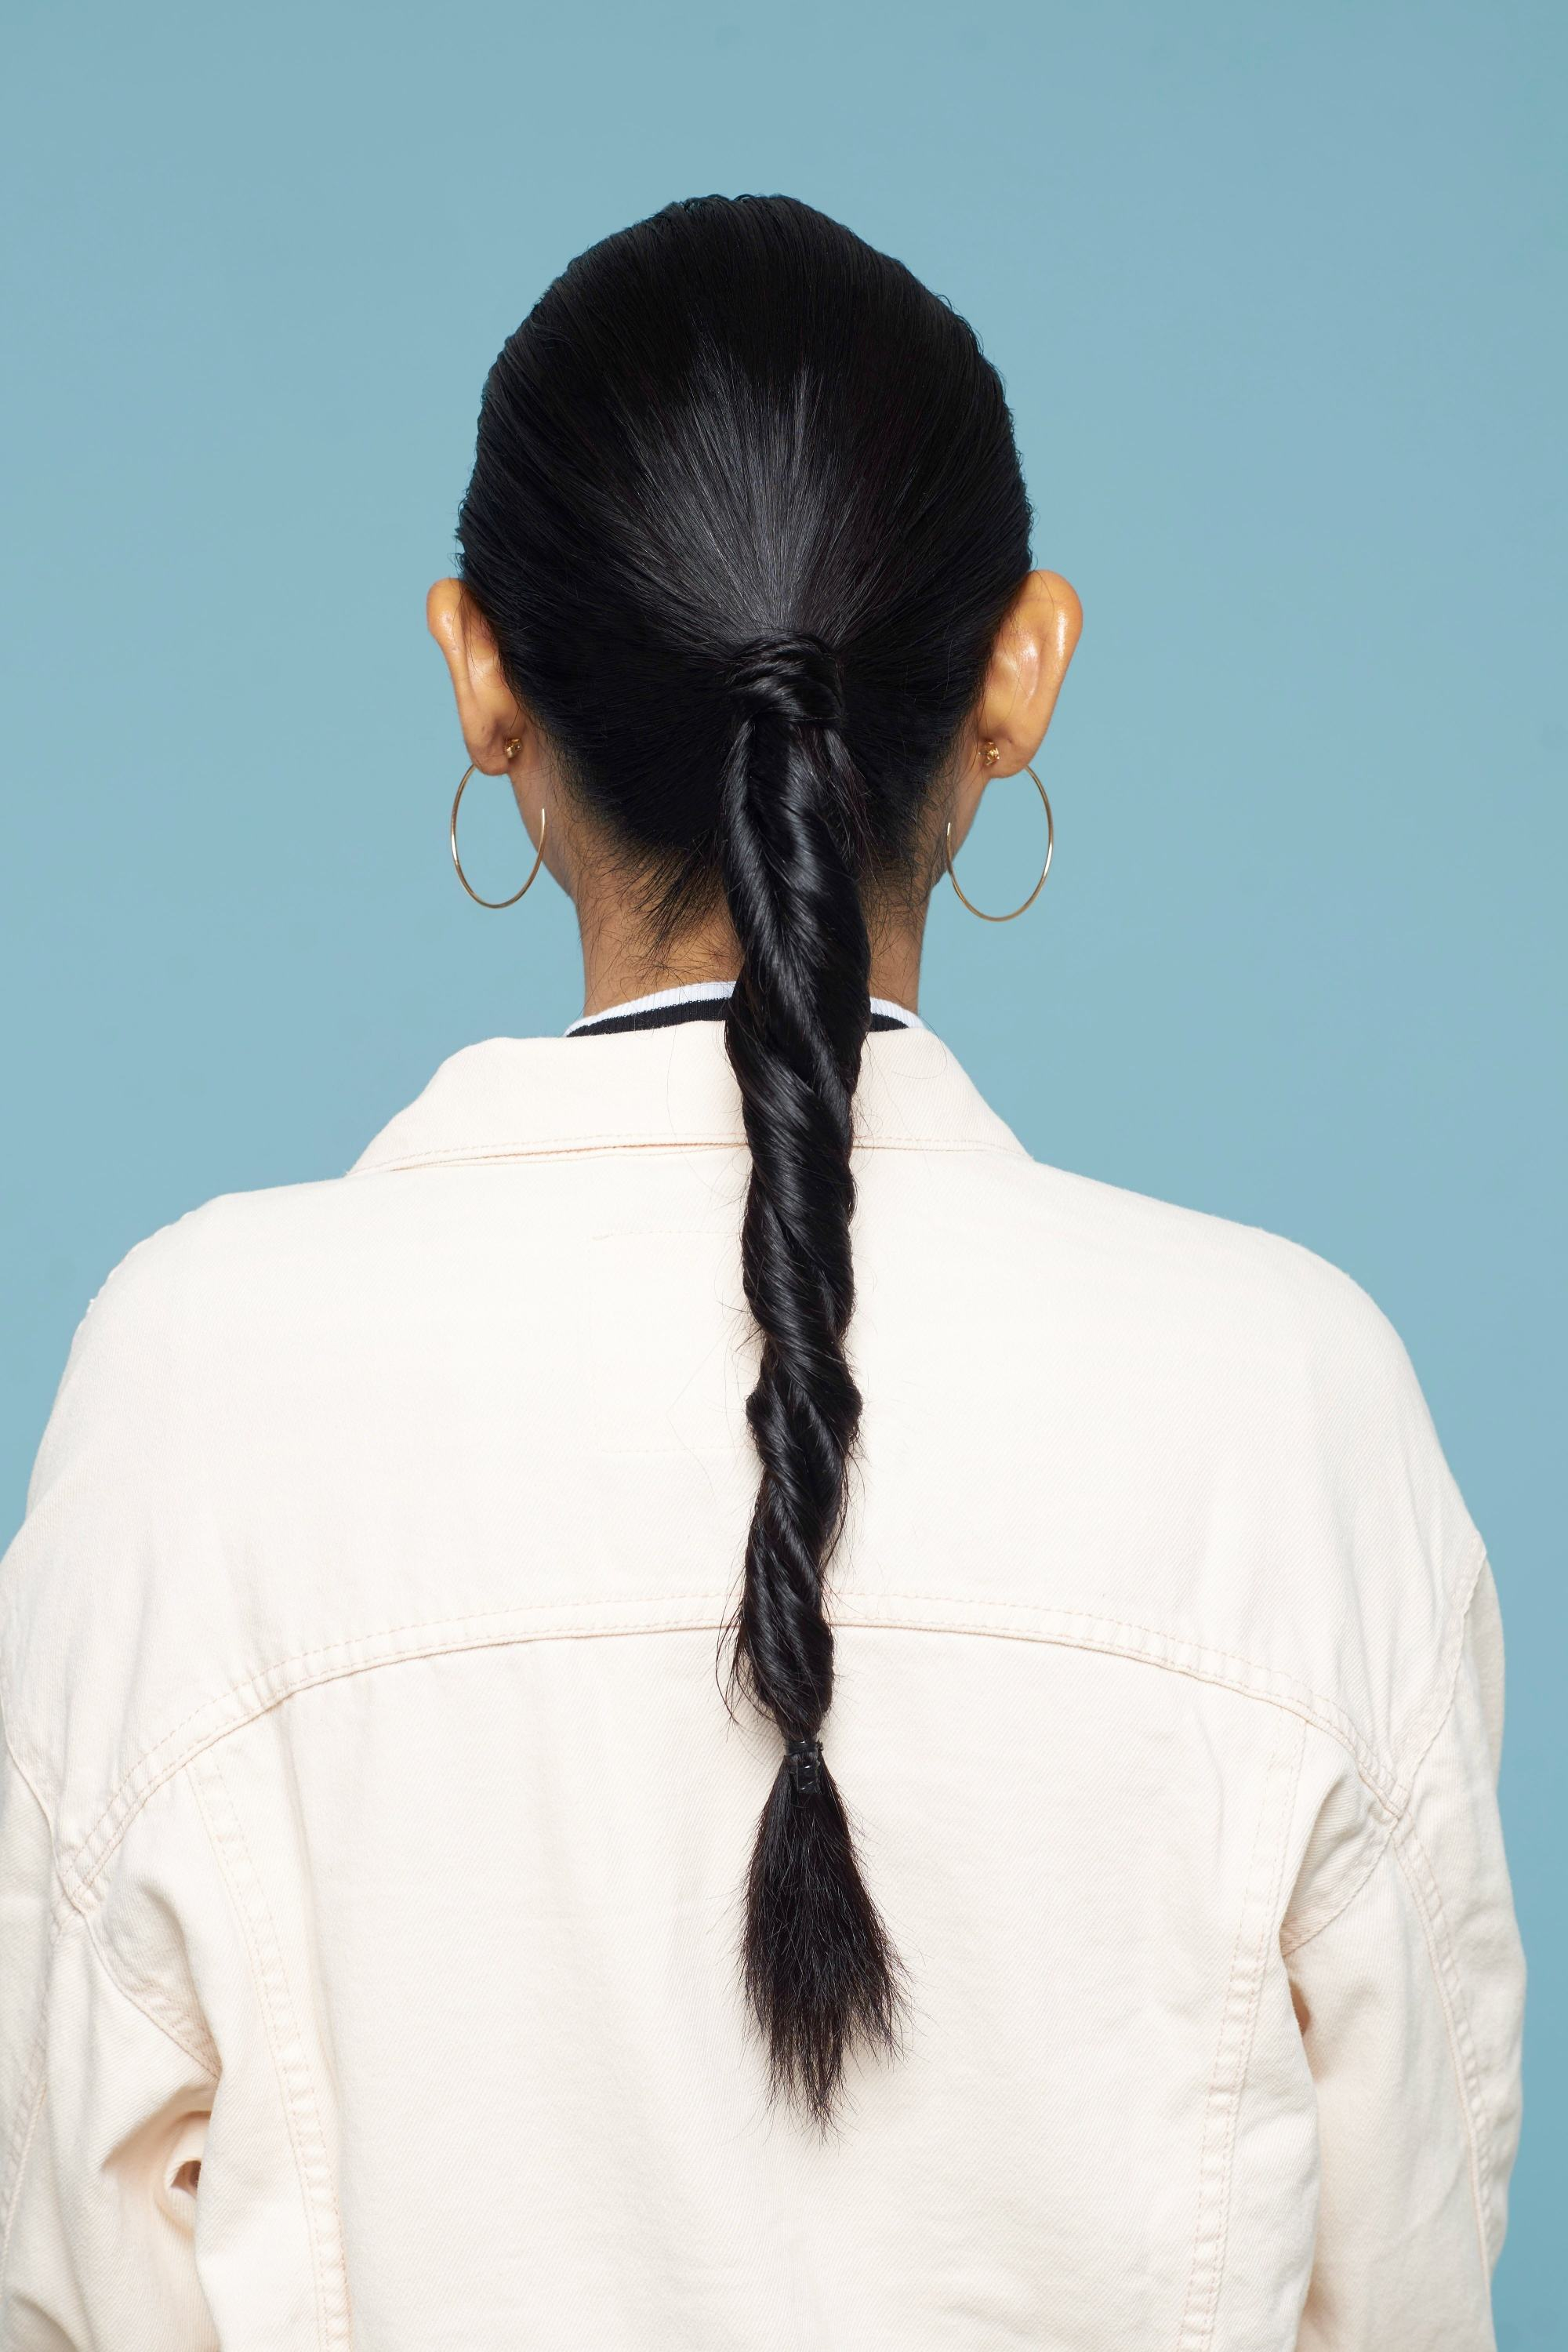 Back shot of an Asian woman with long black hair in double rope braid ponytail